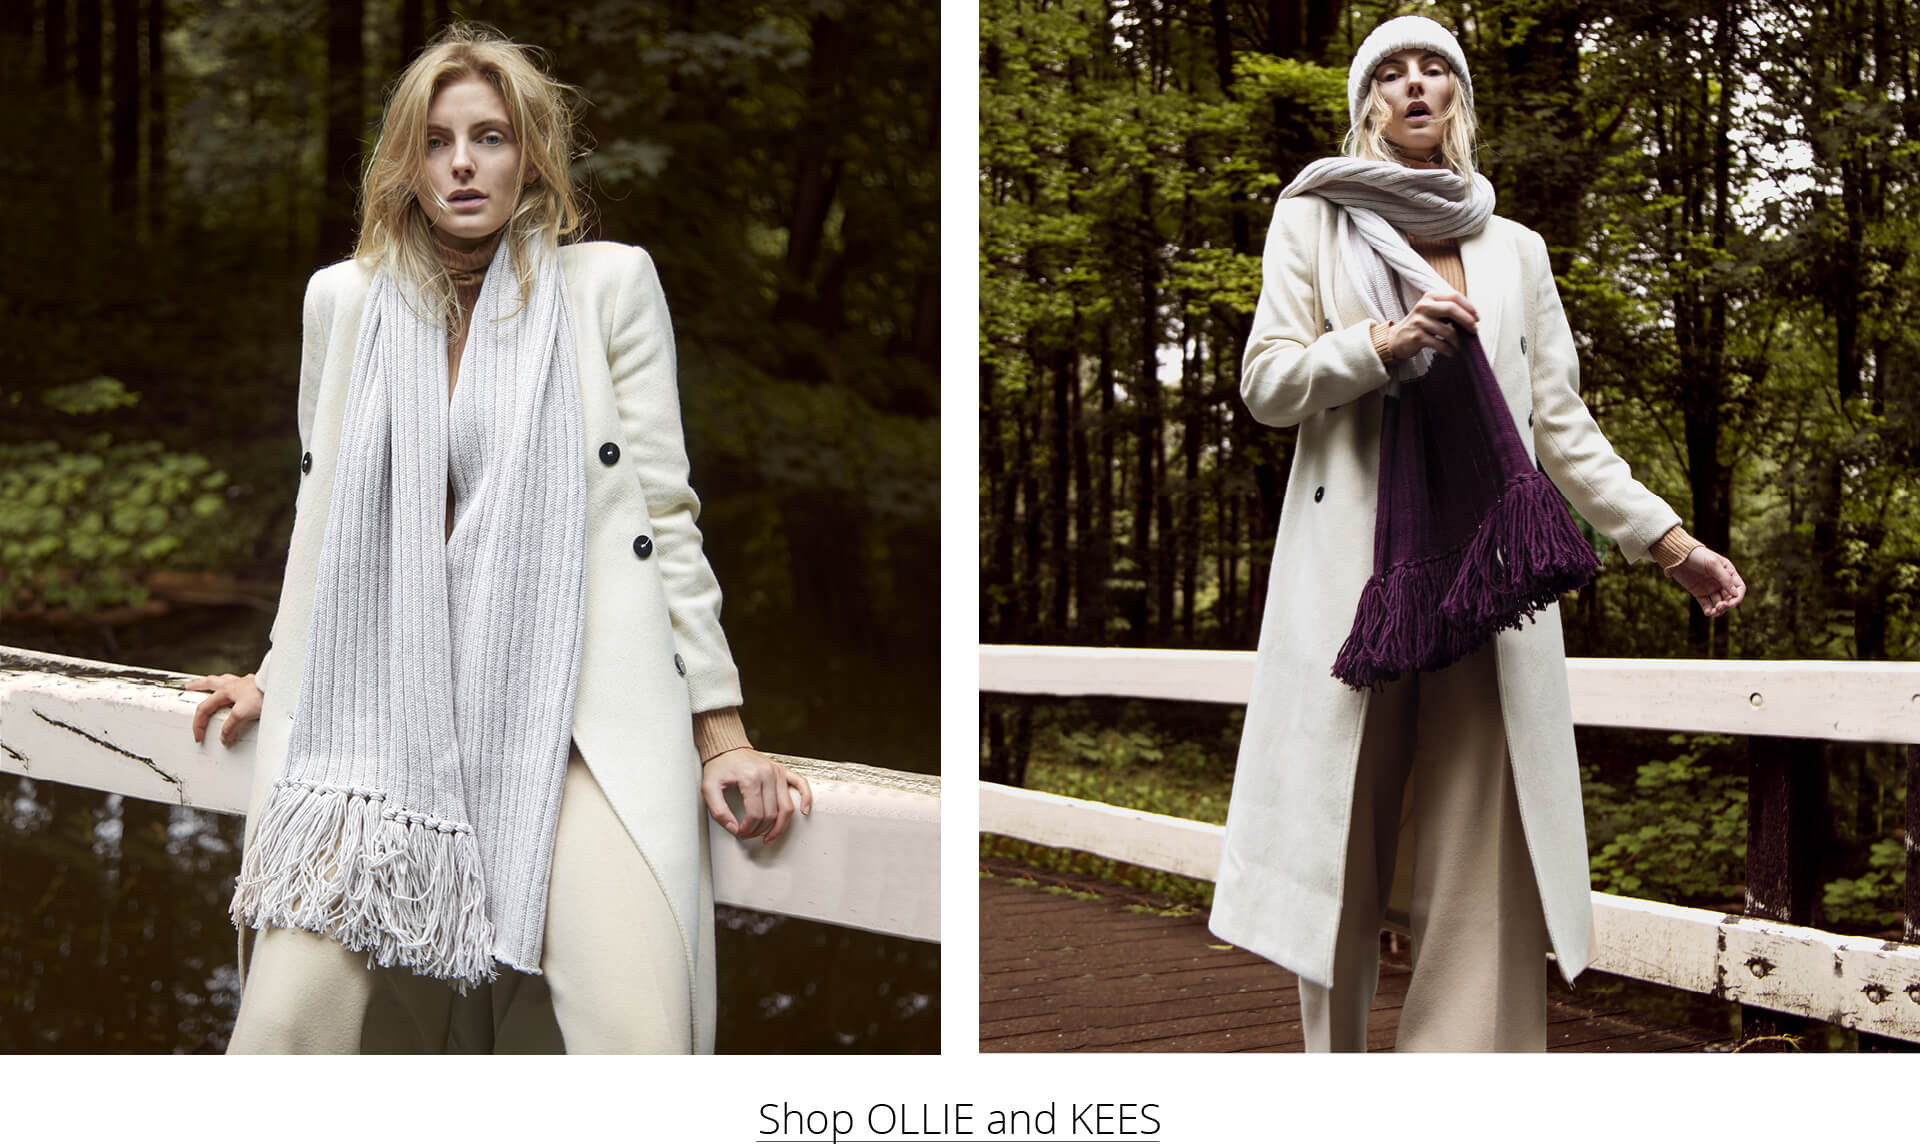 NEW collection OLLIE and KEES